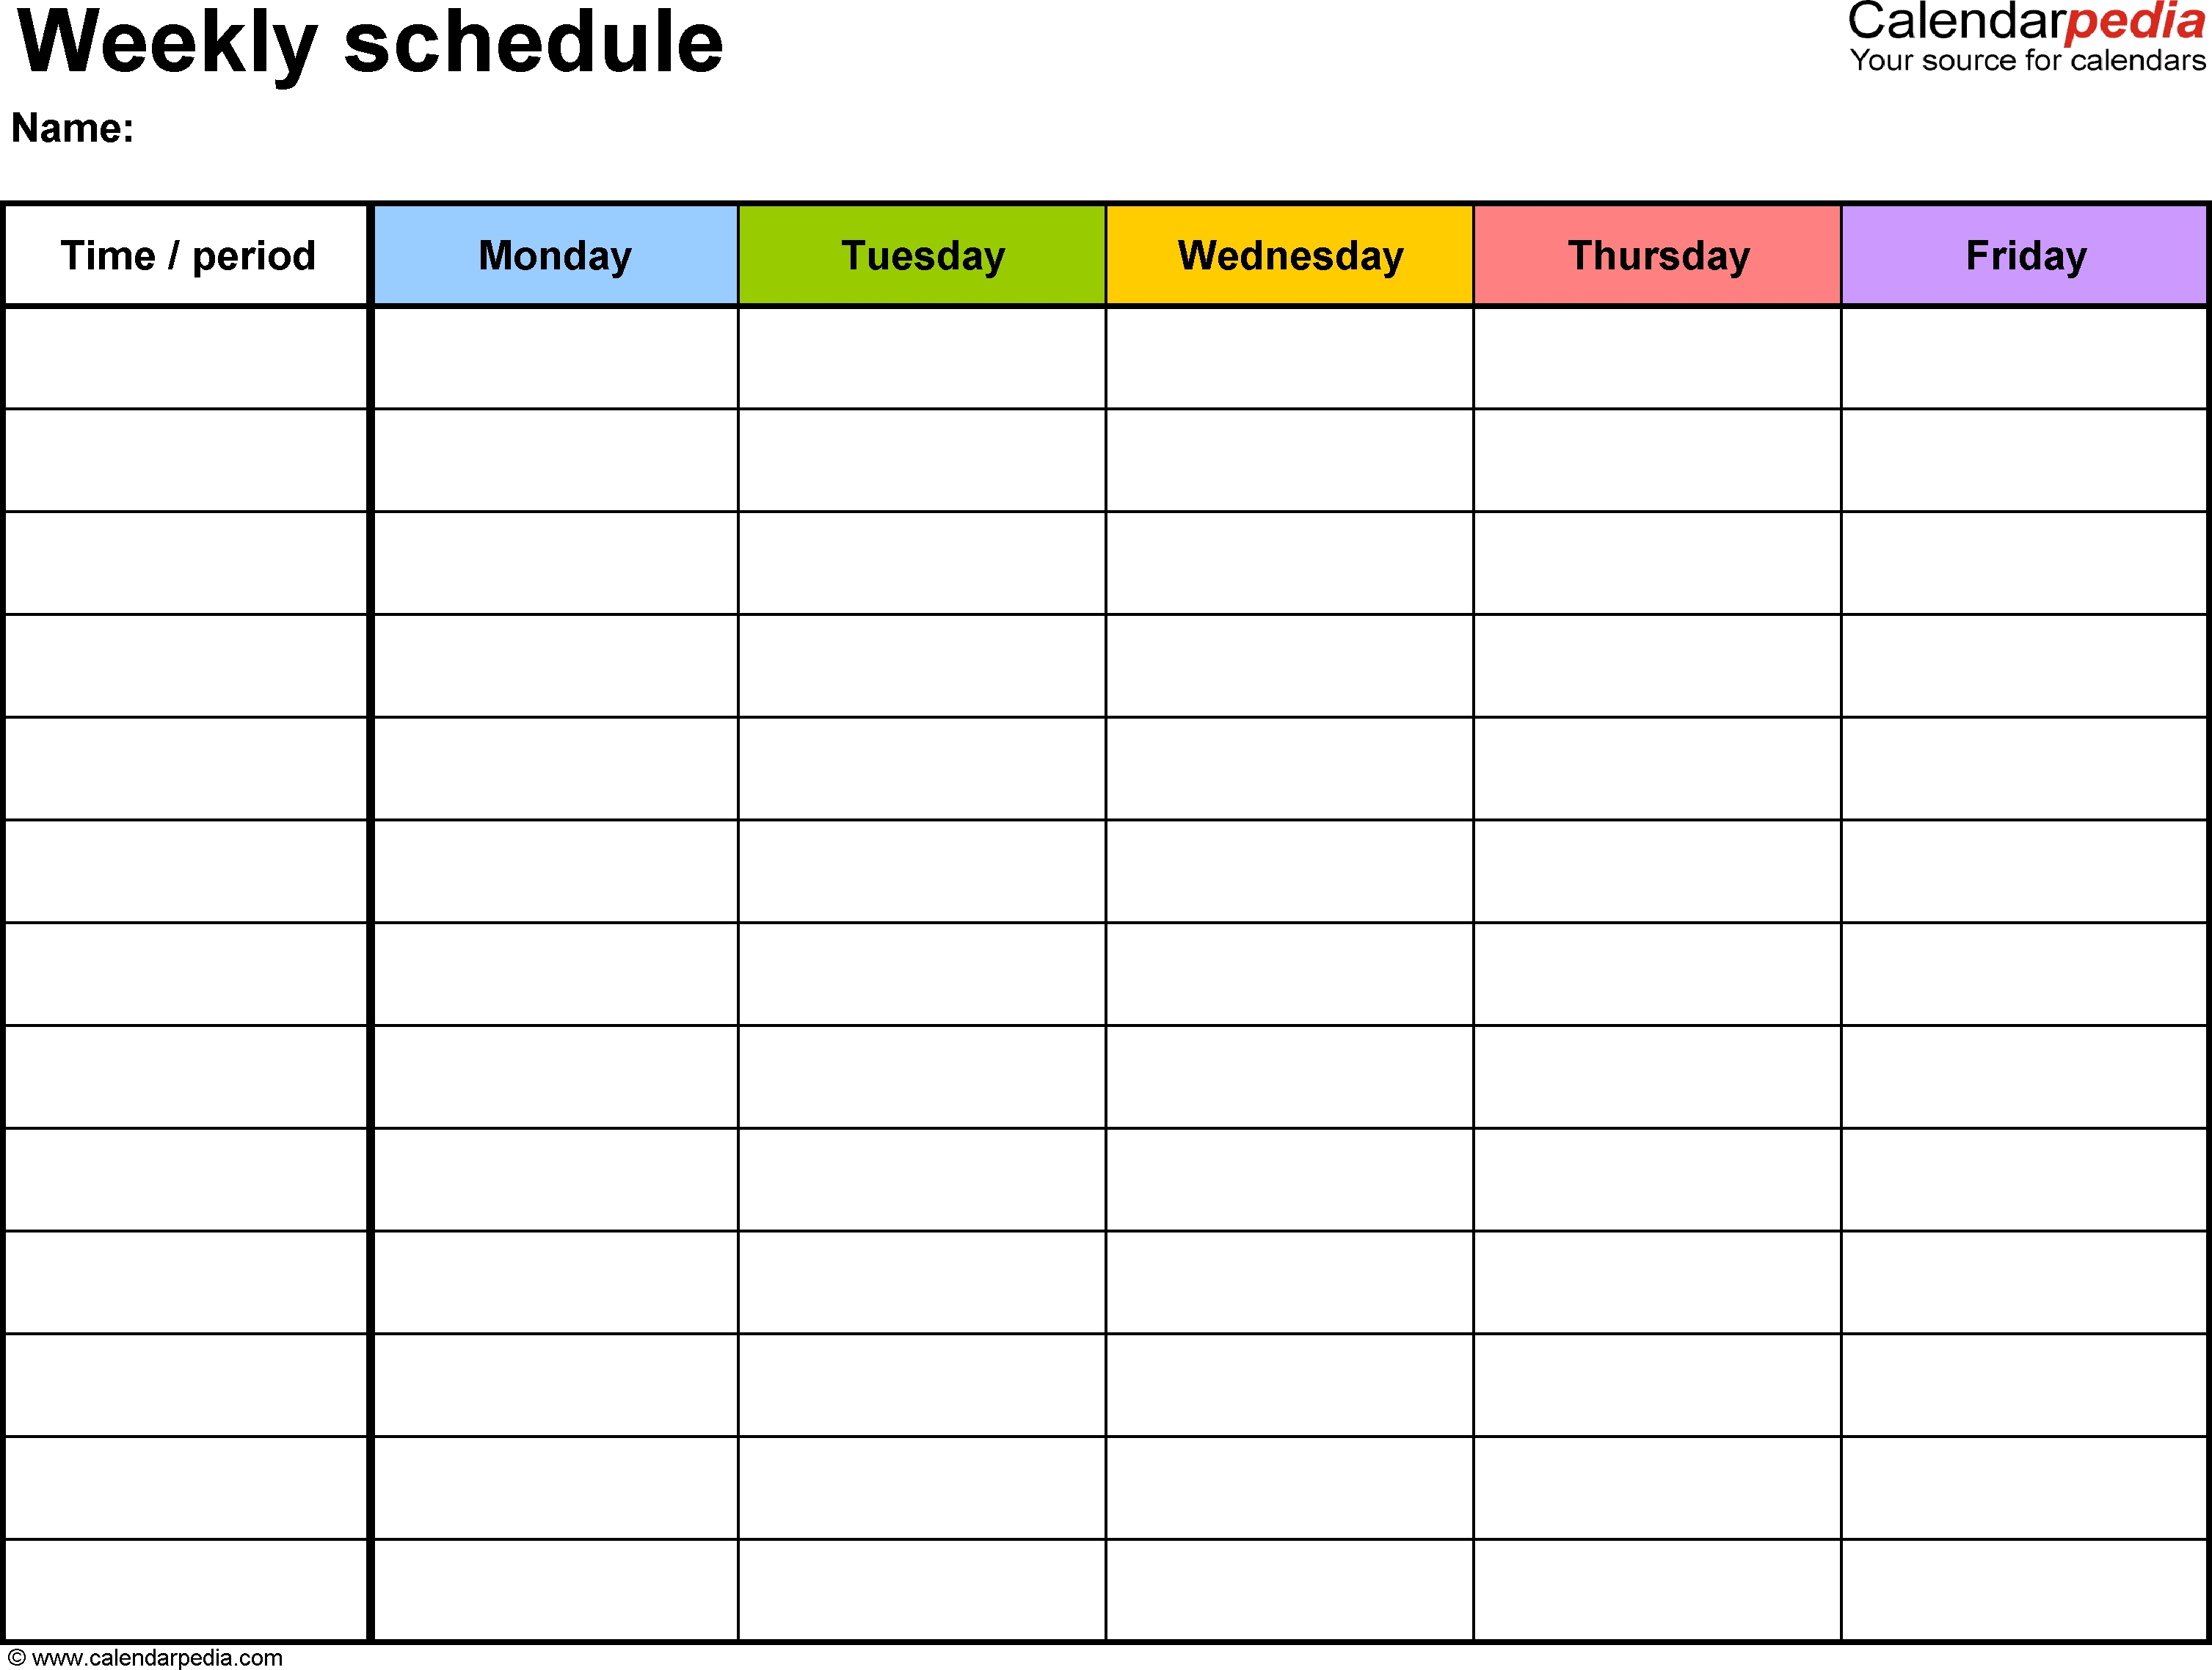 Free Weekly Schedule Templates For Excel - 18 Templates for Day And Time Calendar Template